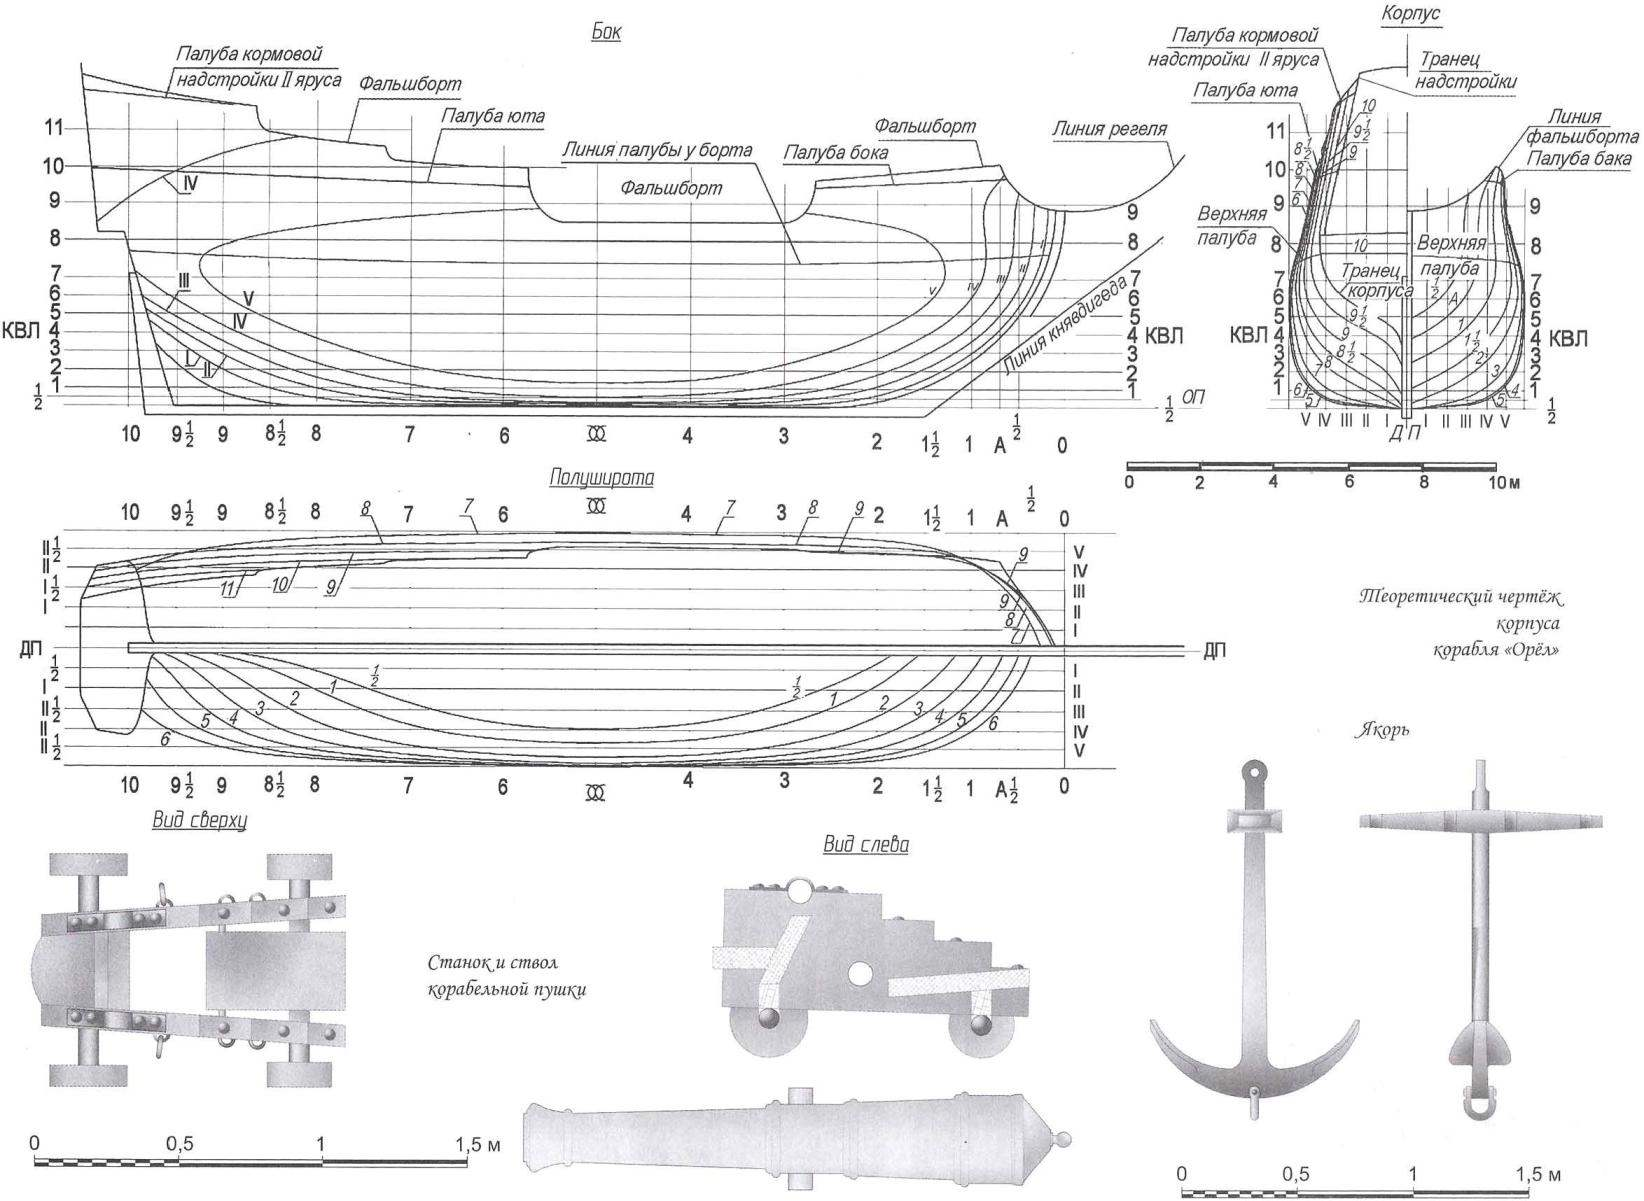 The theoretical drawing of the hull of the ship